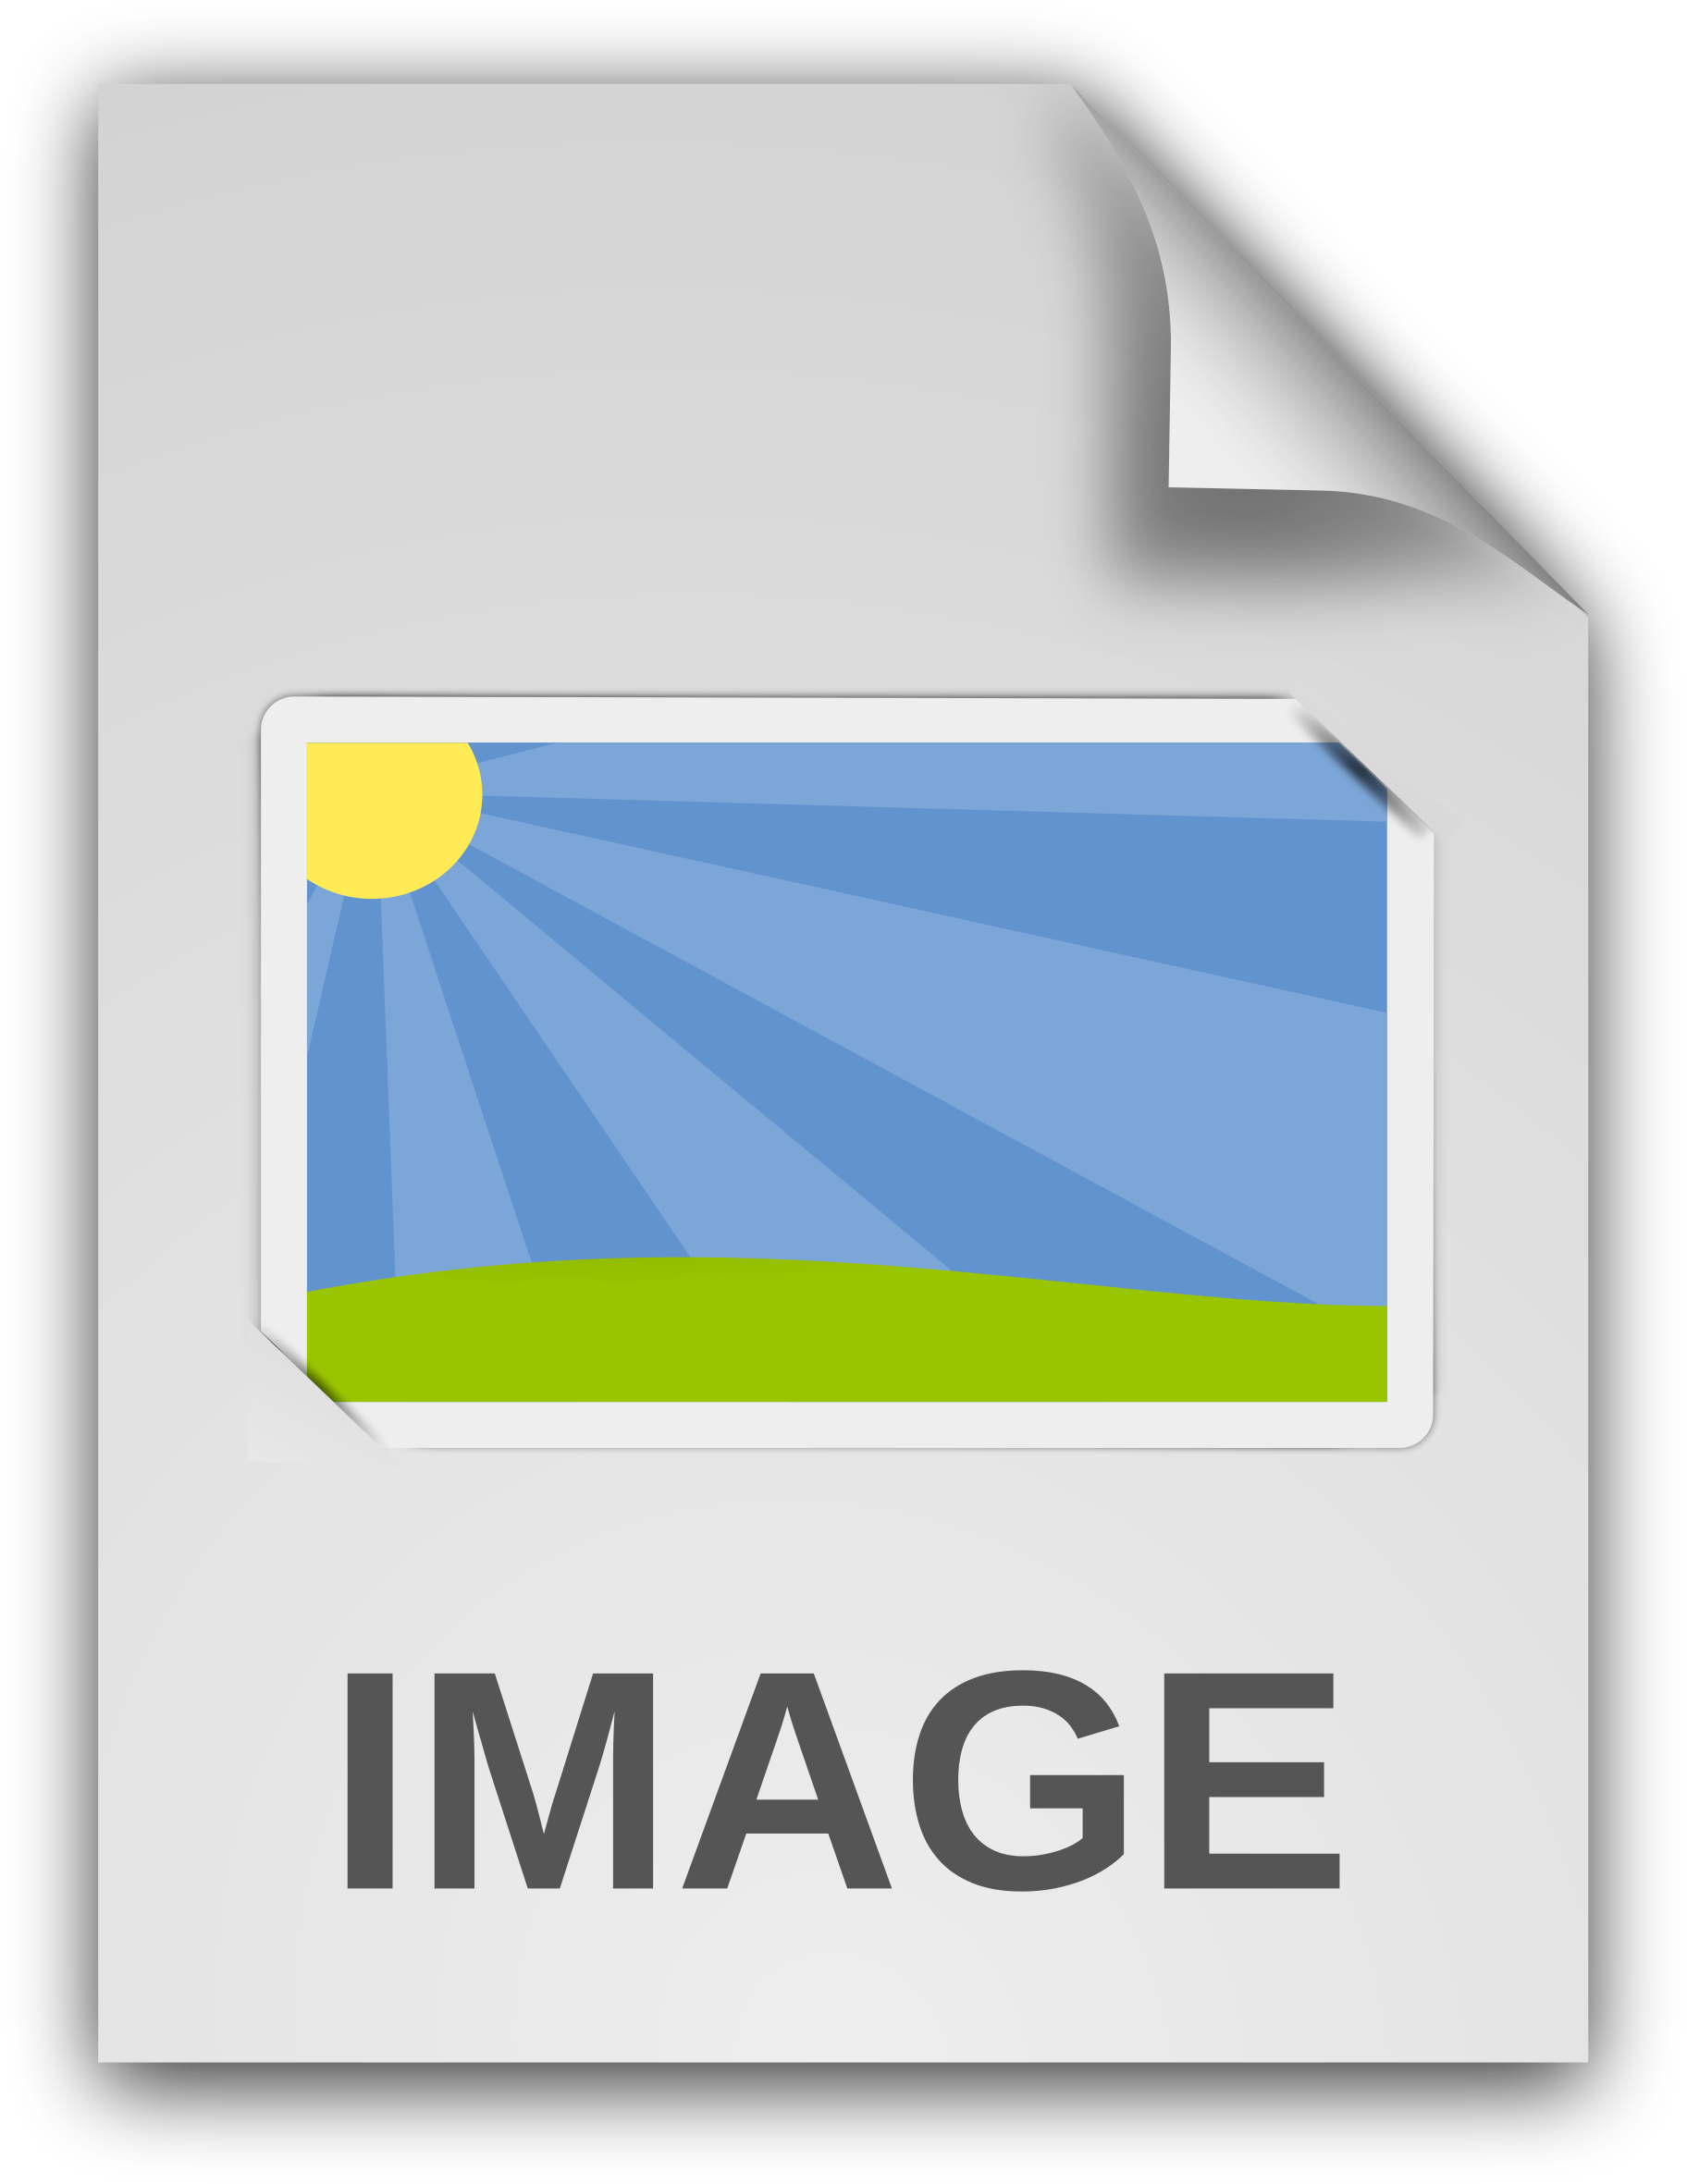 Image icon big png. Document clipart generic